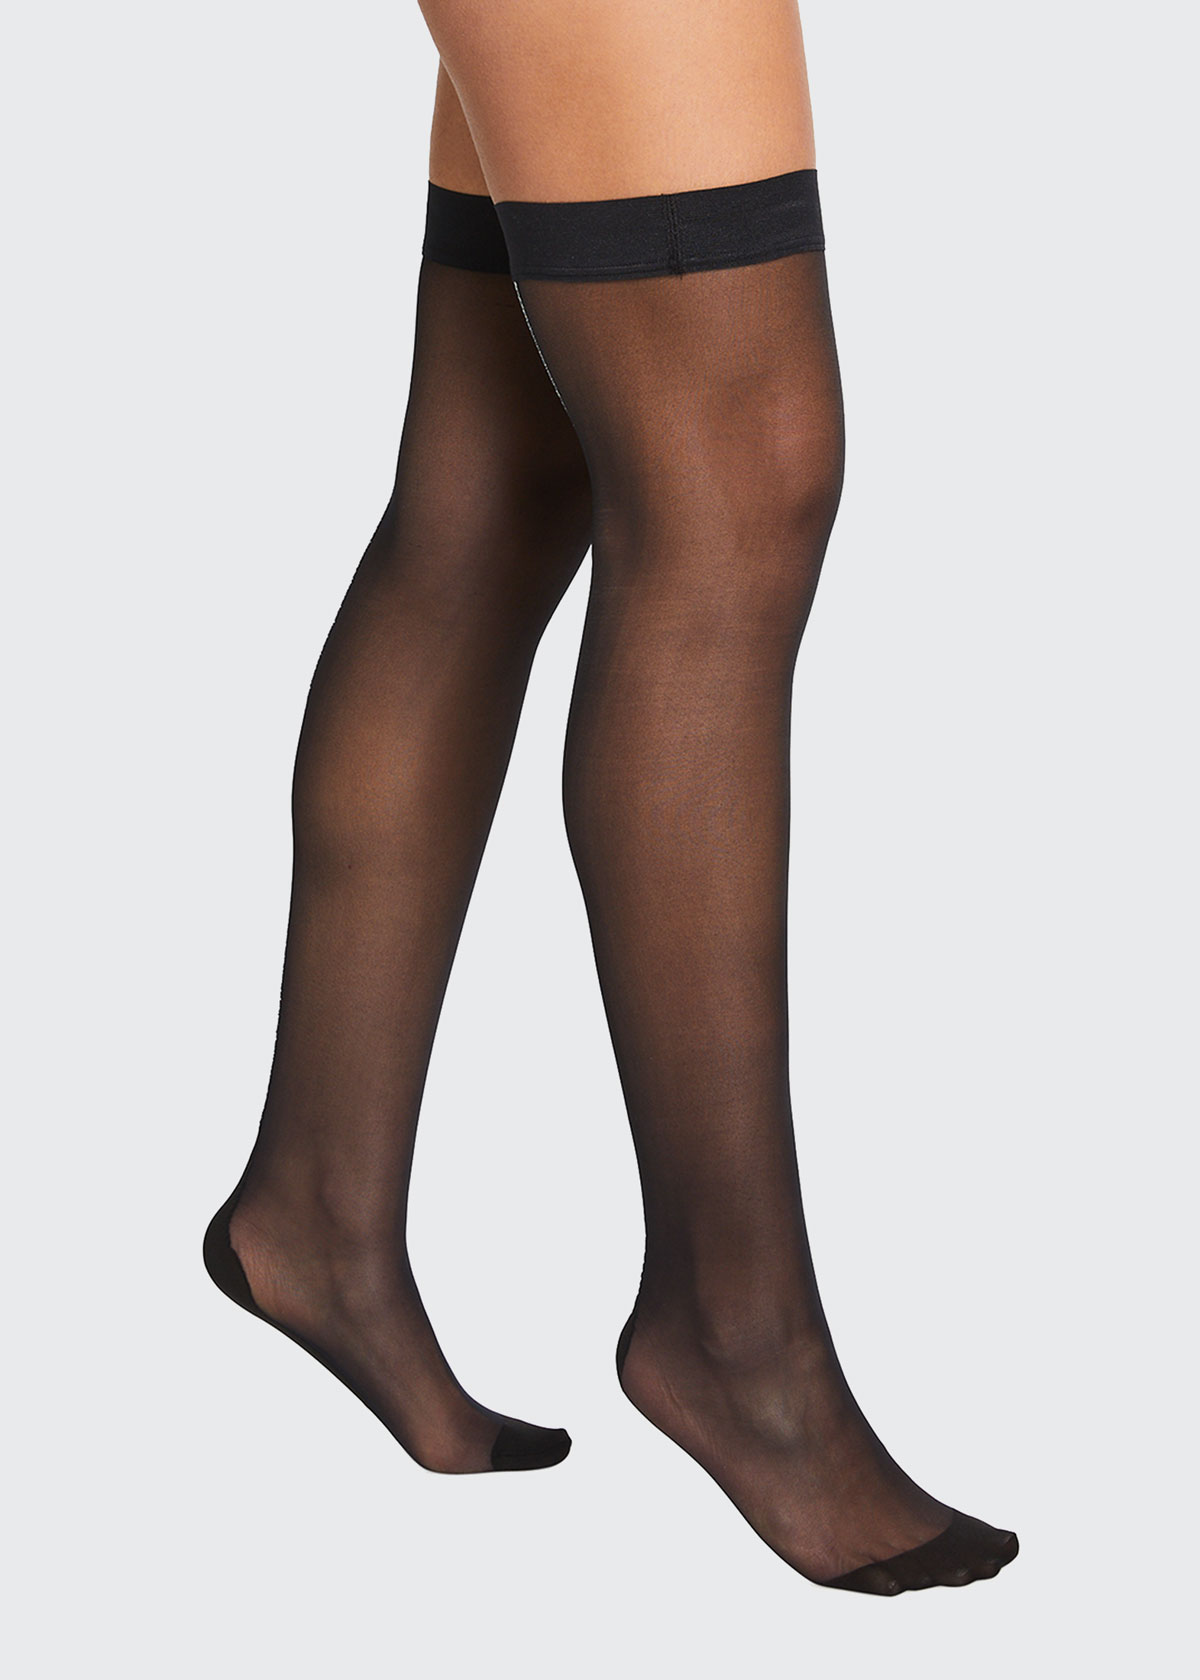 Wolford LUNA STAY-UP STOCKINGS